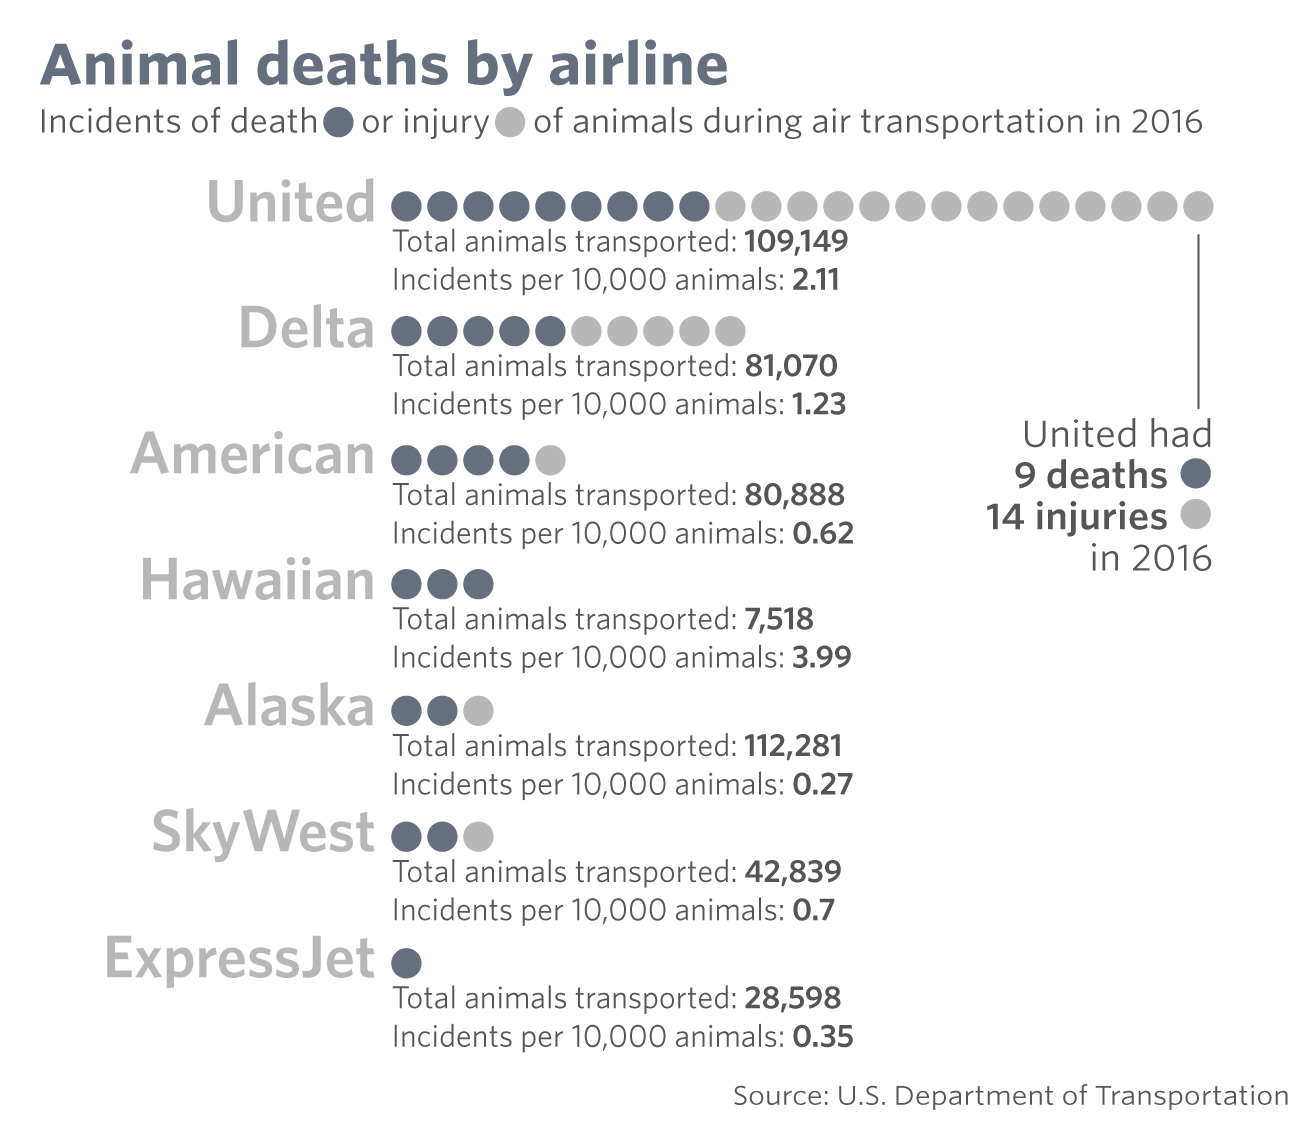 United Airlines Most Animal Deaths On U S Flights